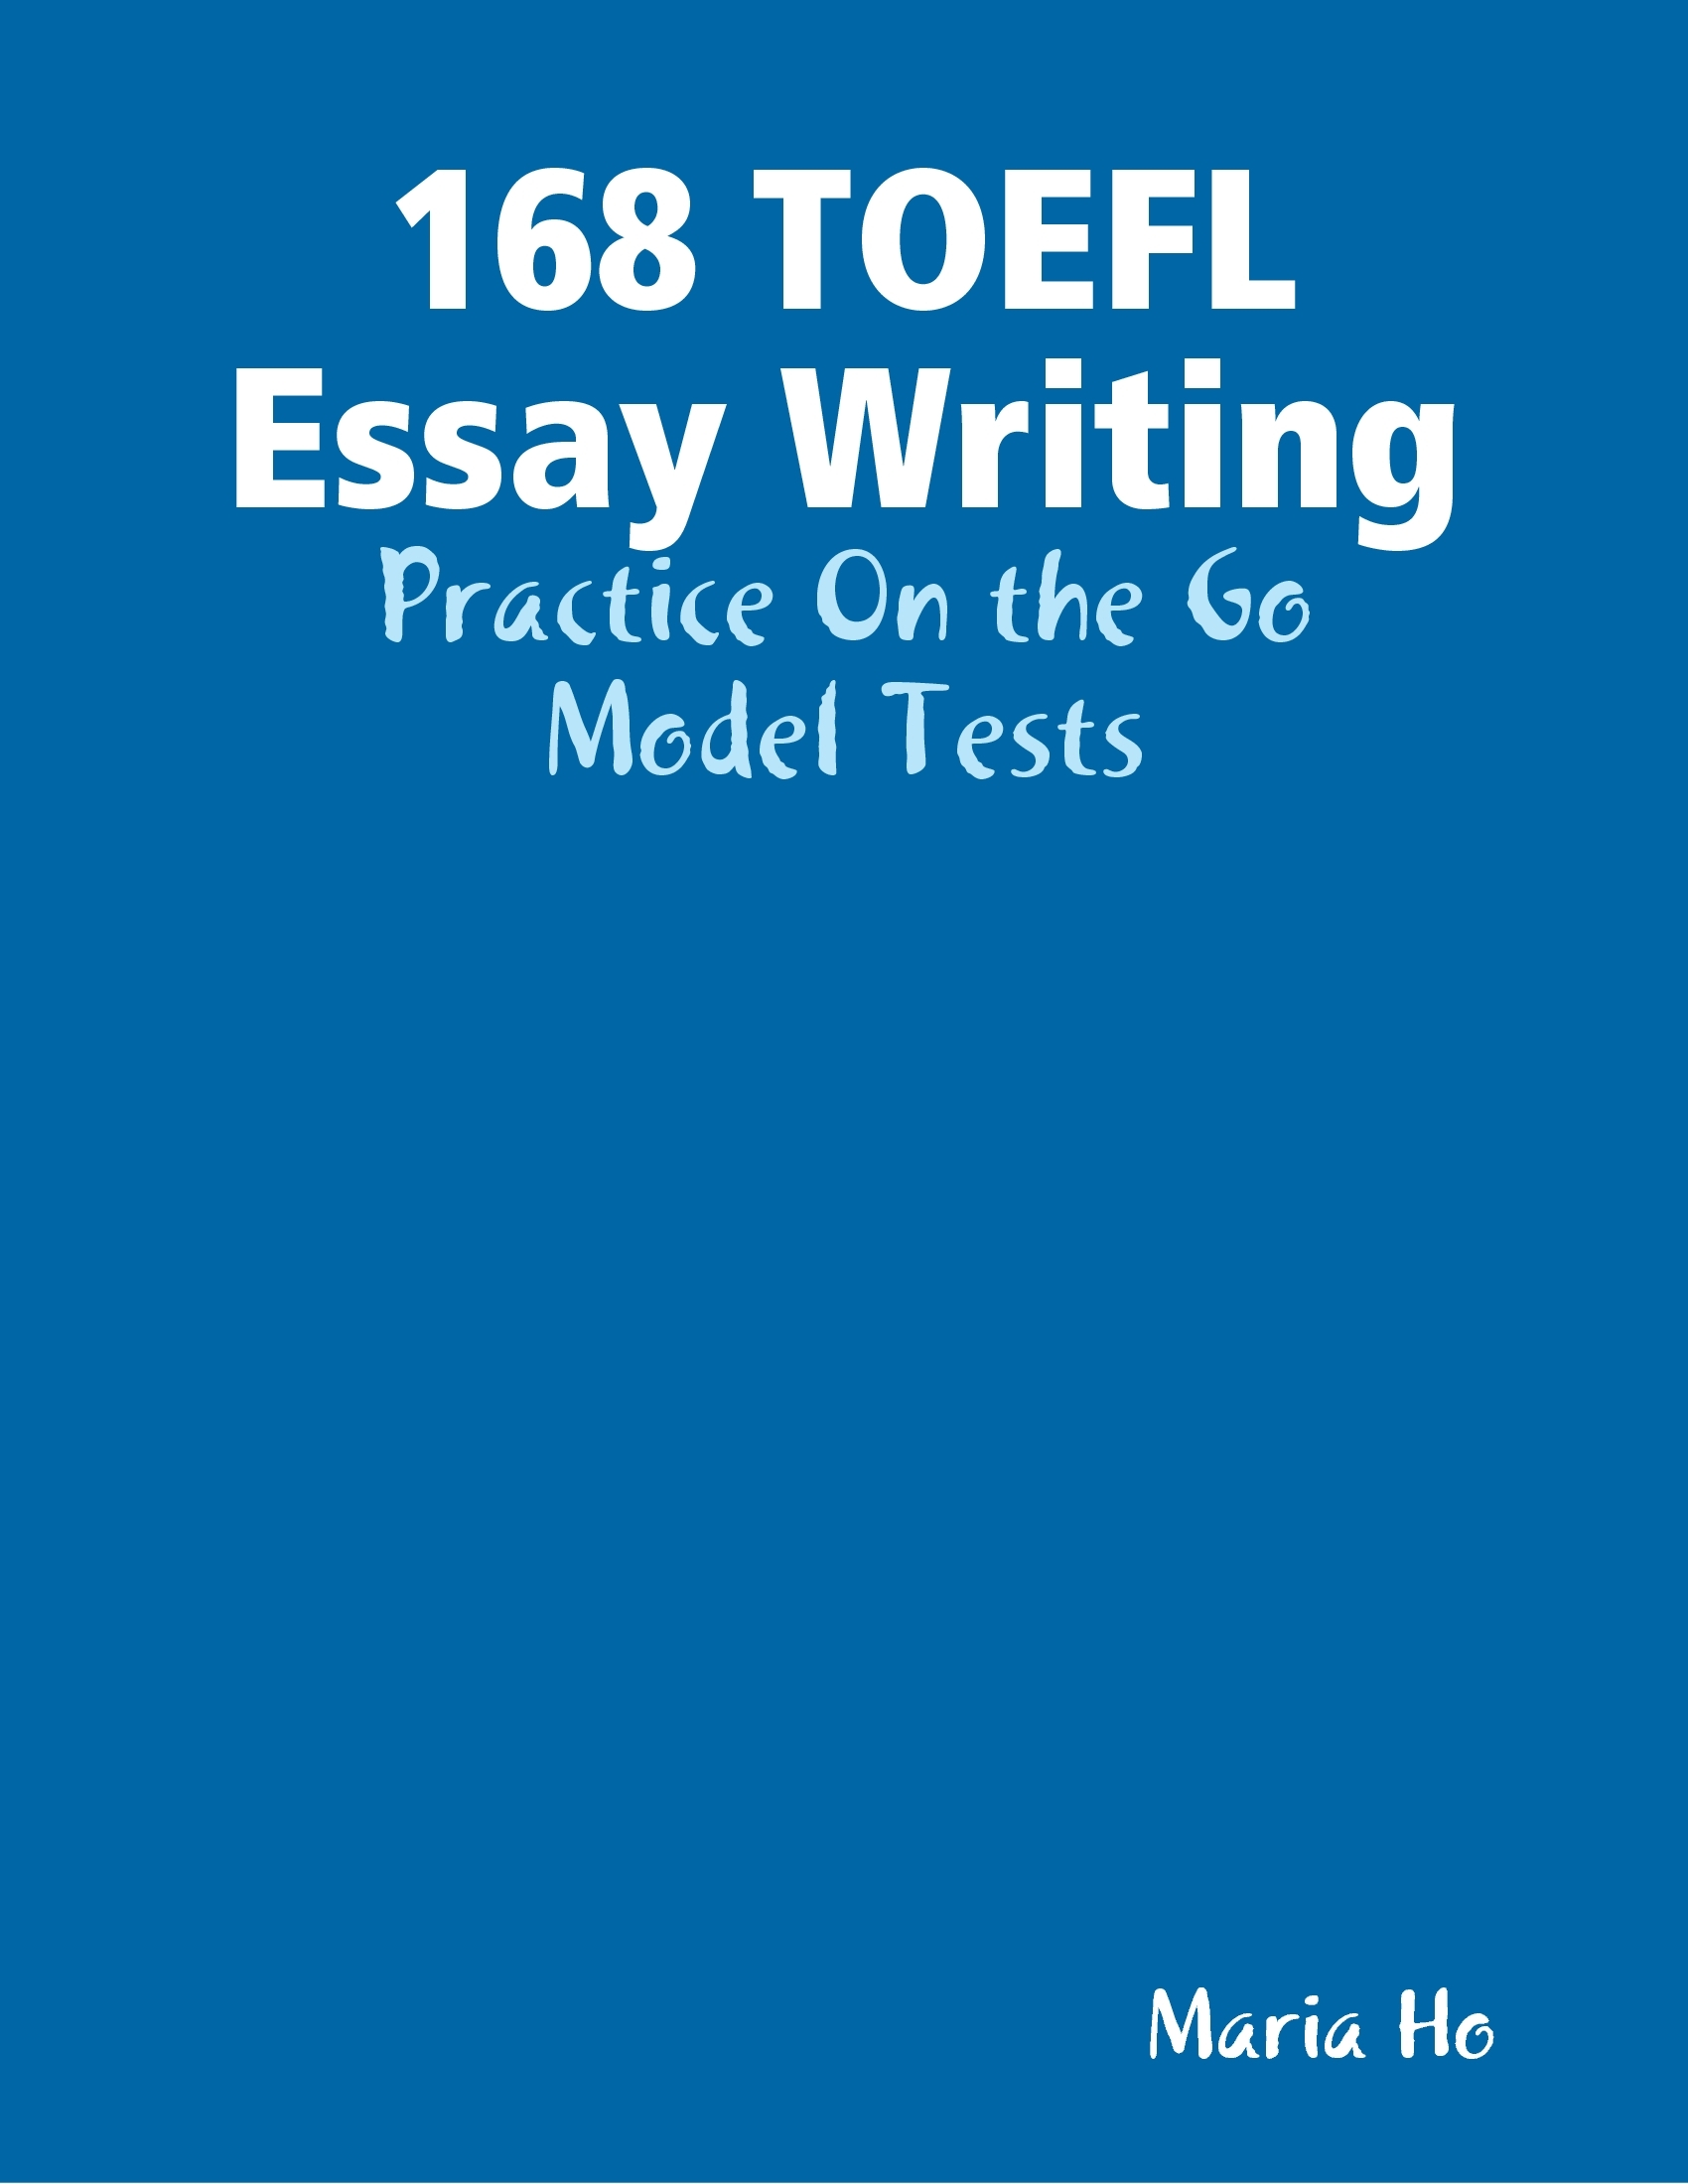 essay writing toefl test Some additional writing tips to help someone prepare better for the writing section of the ibt toefl test, or to help them with their speaking in general.